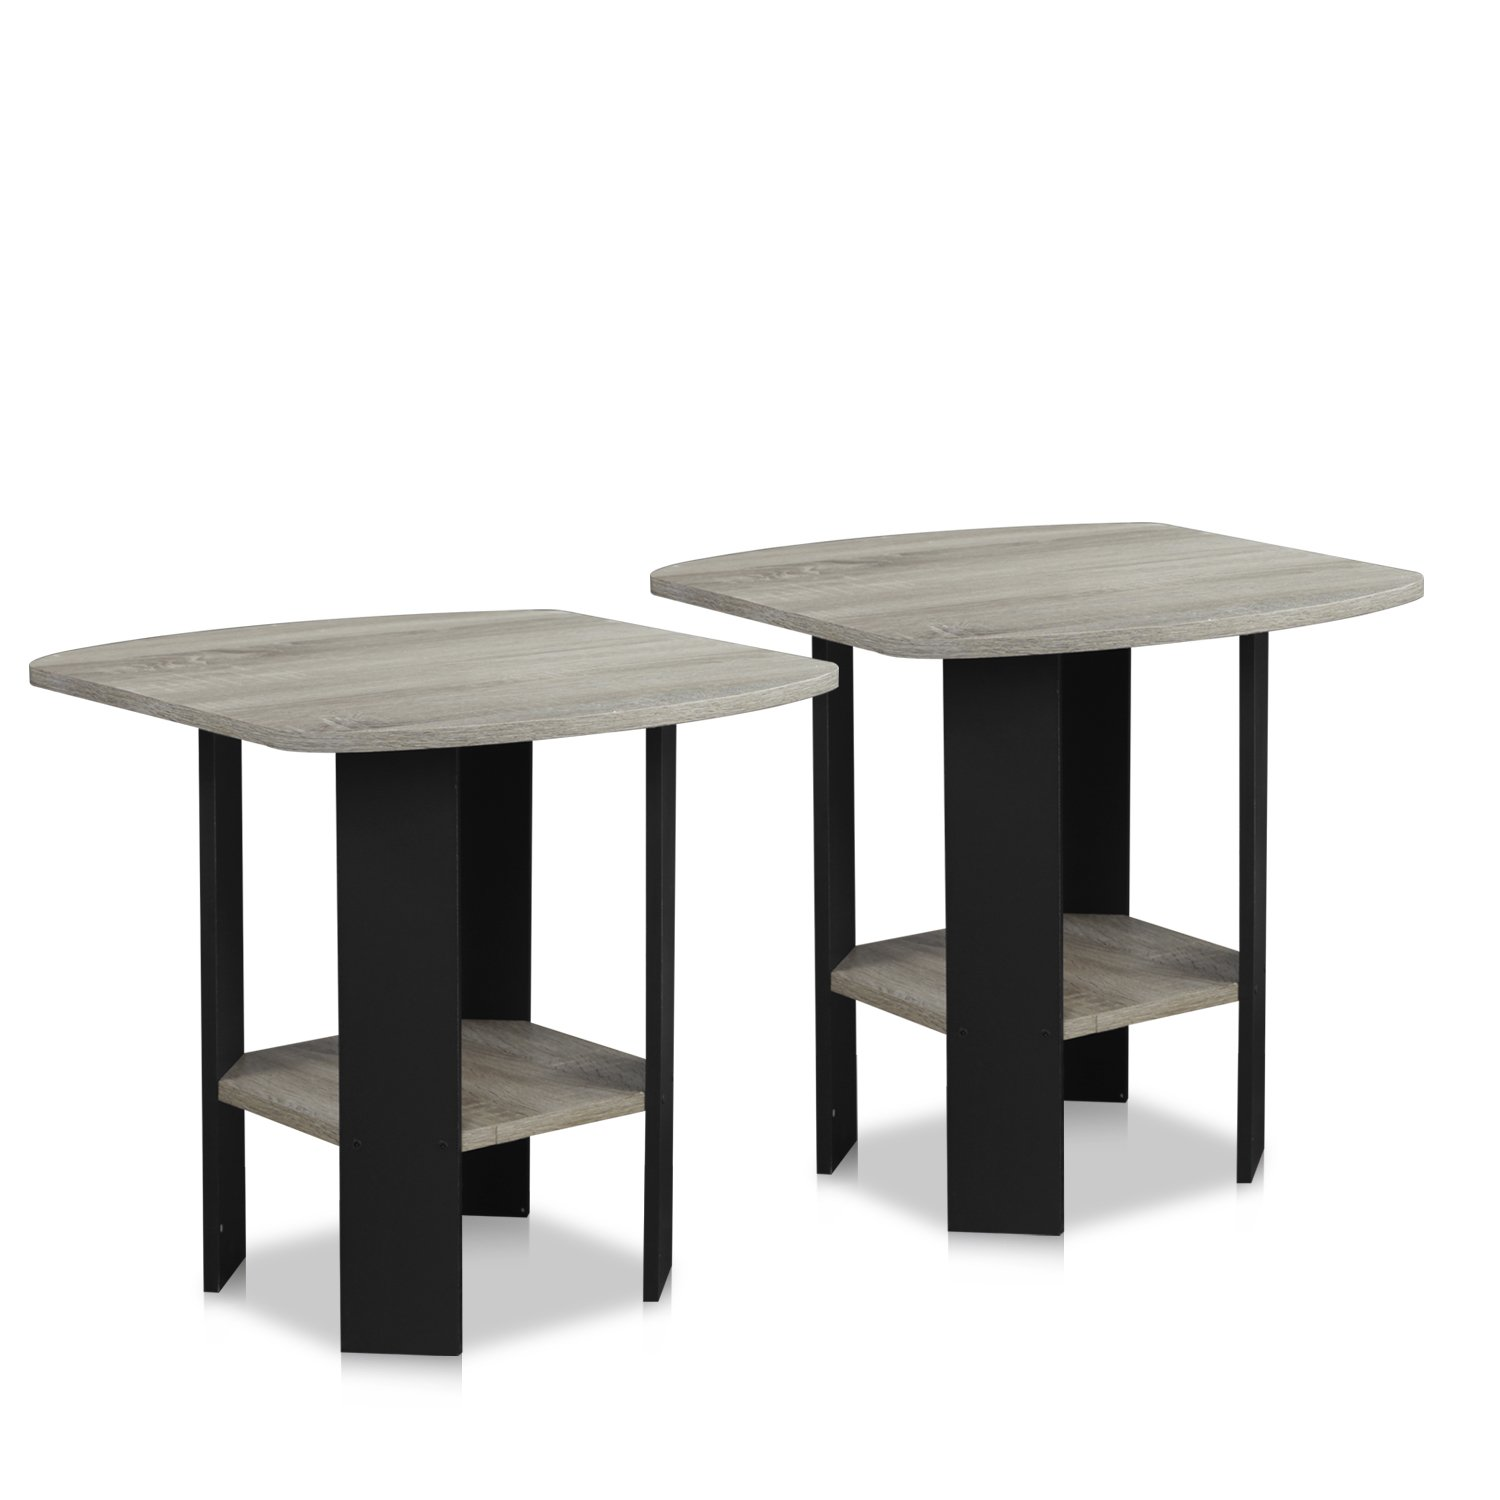 Furinno 2-11180GYW End Table, 2-Pack, French Oak Grey/Black by Furinno